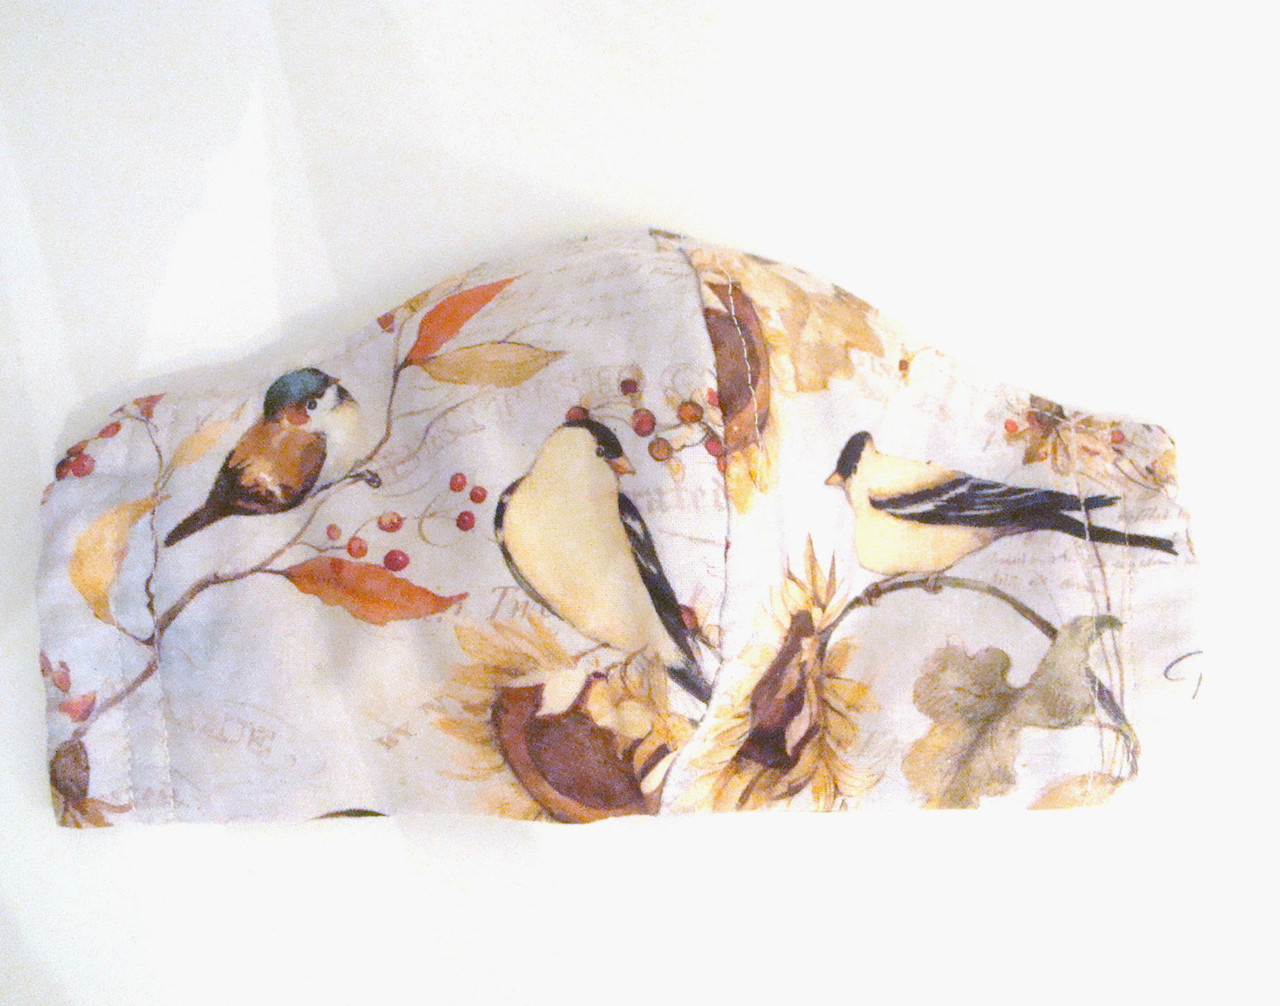 Face Mask - Fall Songbirds and Pheasants (FM-FALL-SONGBIRDS-PHEASANTS)